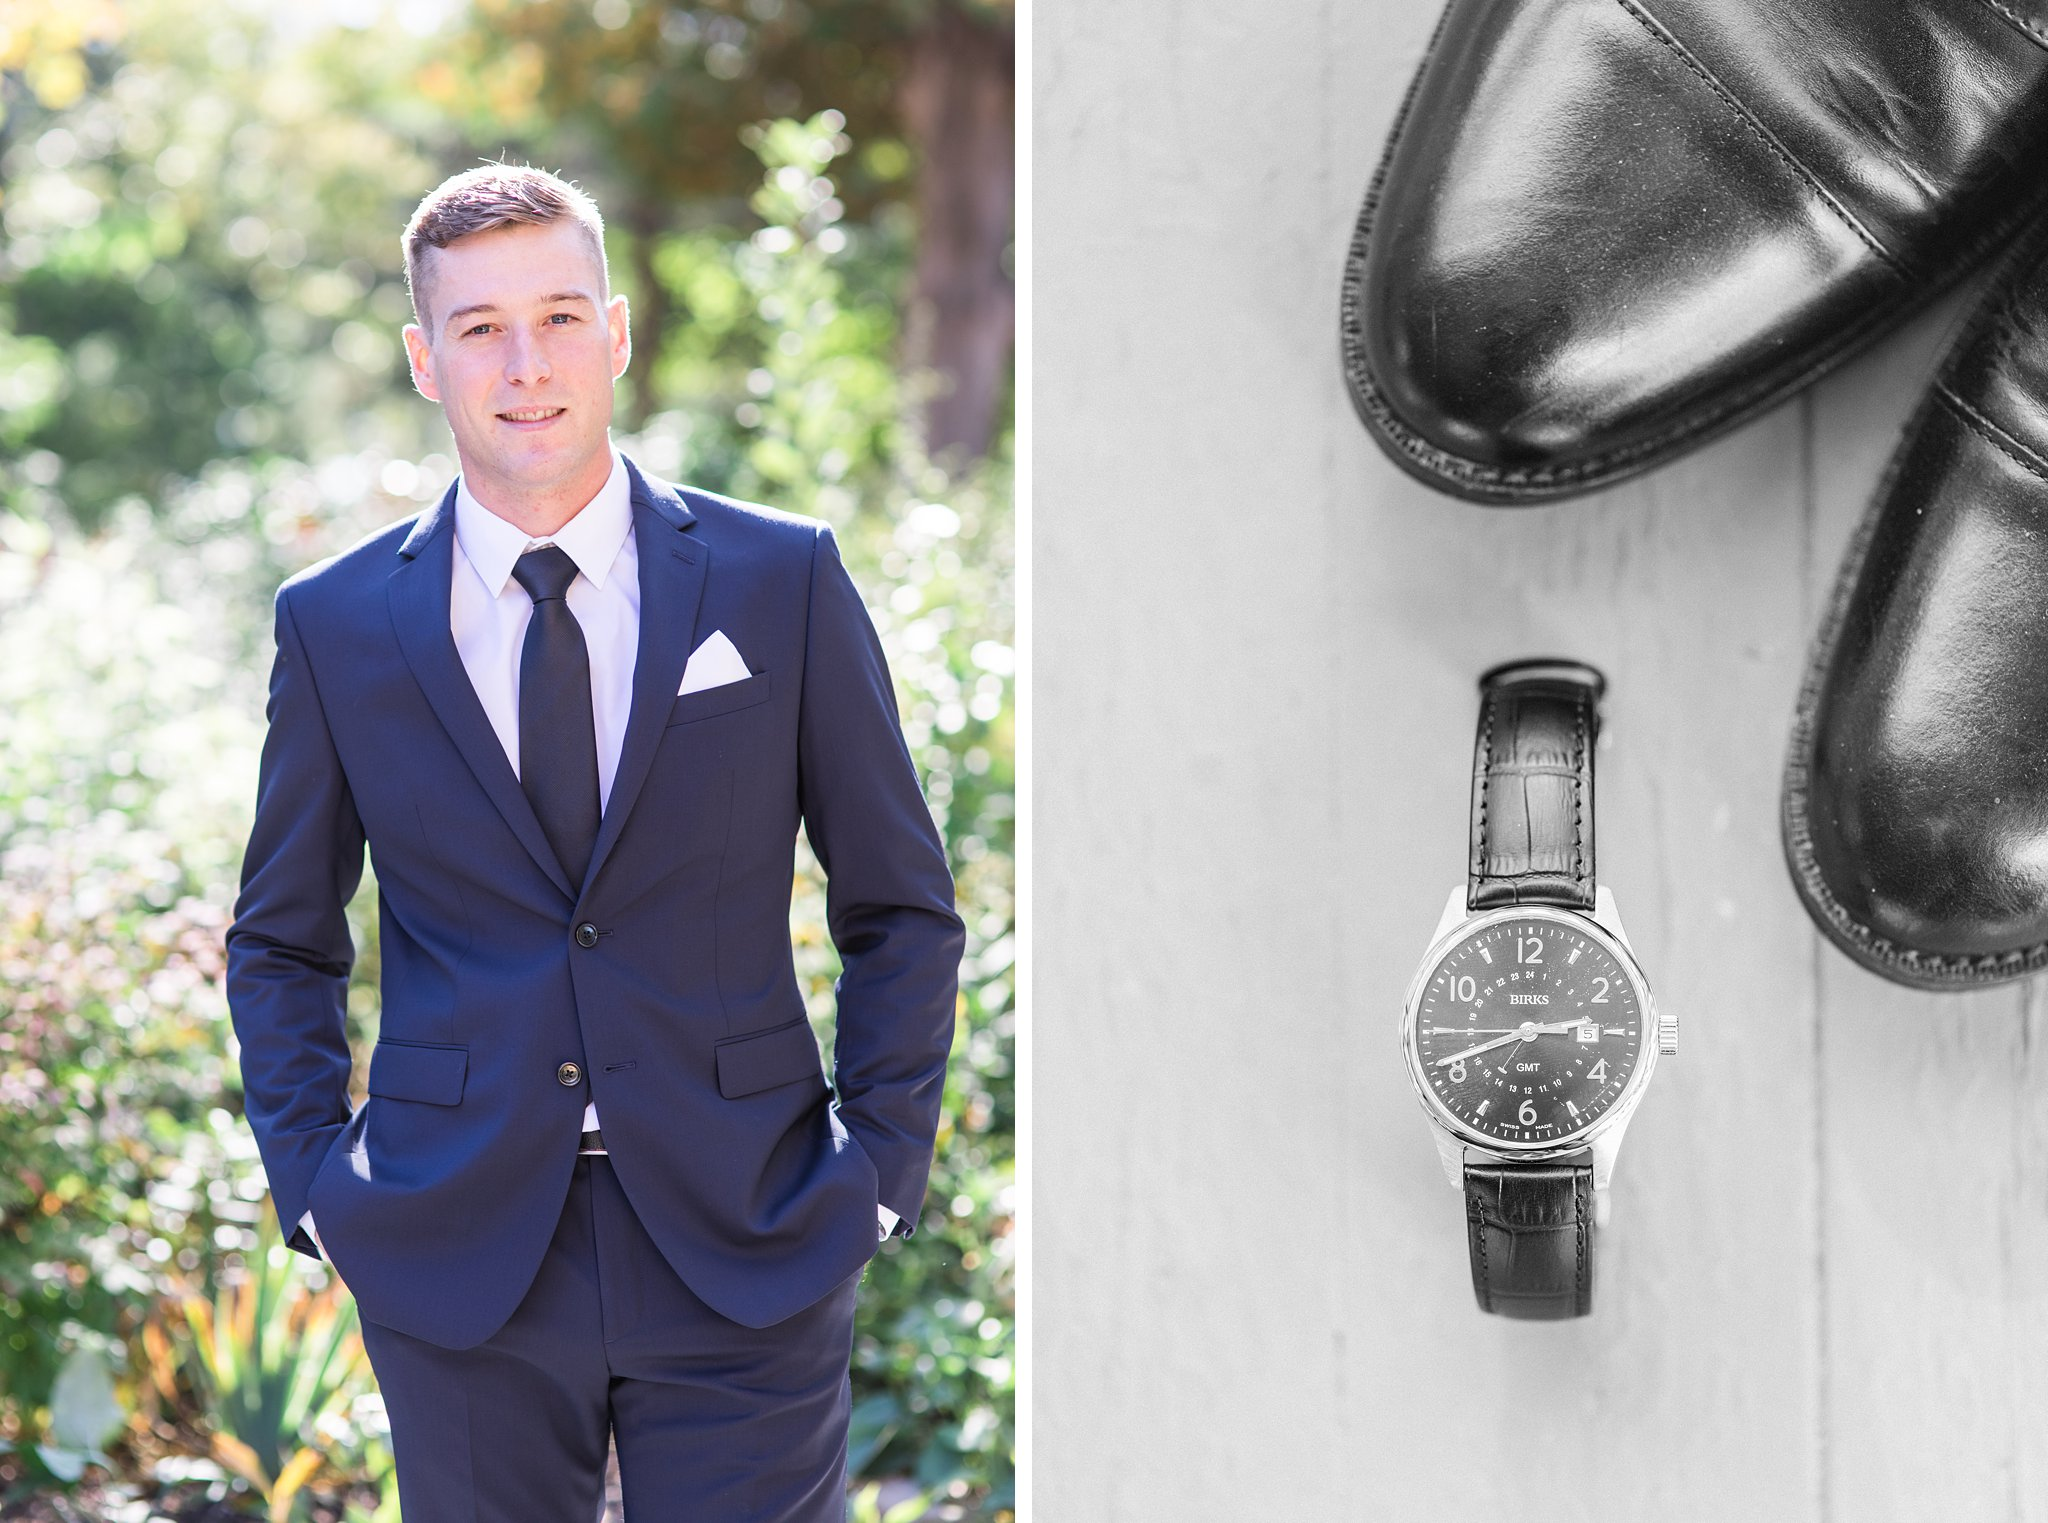 Groom prep, watch and groom with hands in pockets, Opinicon Wedding Photos by Amy Pinder Photography